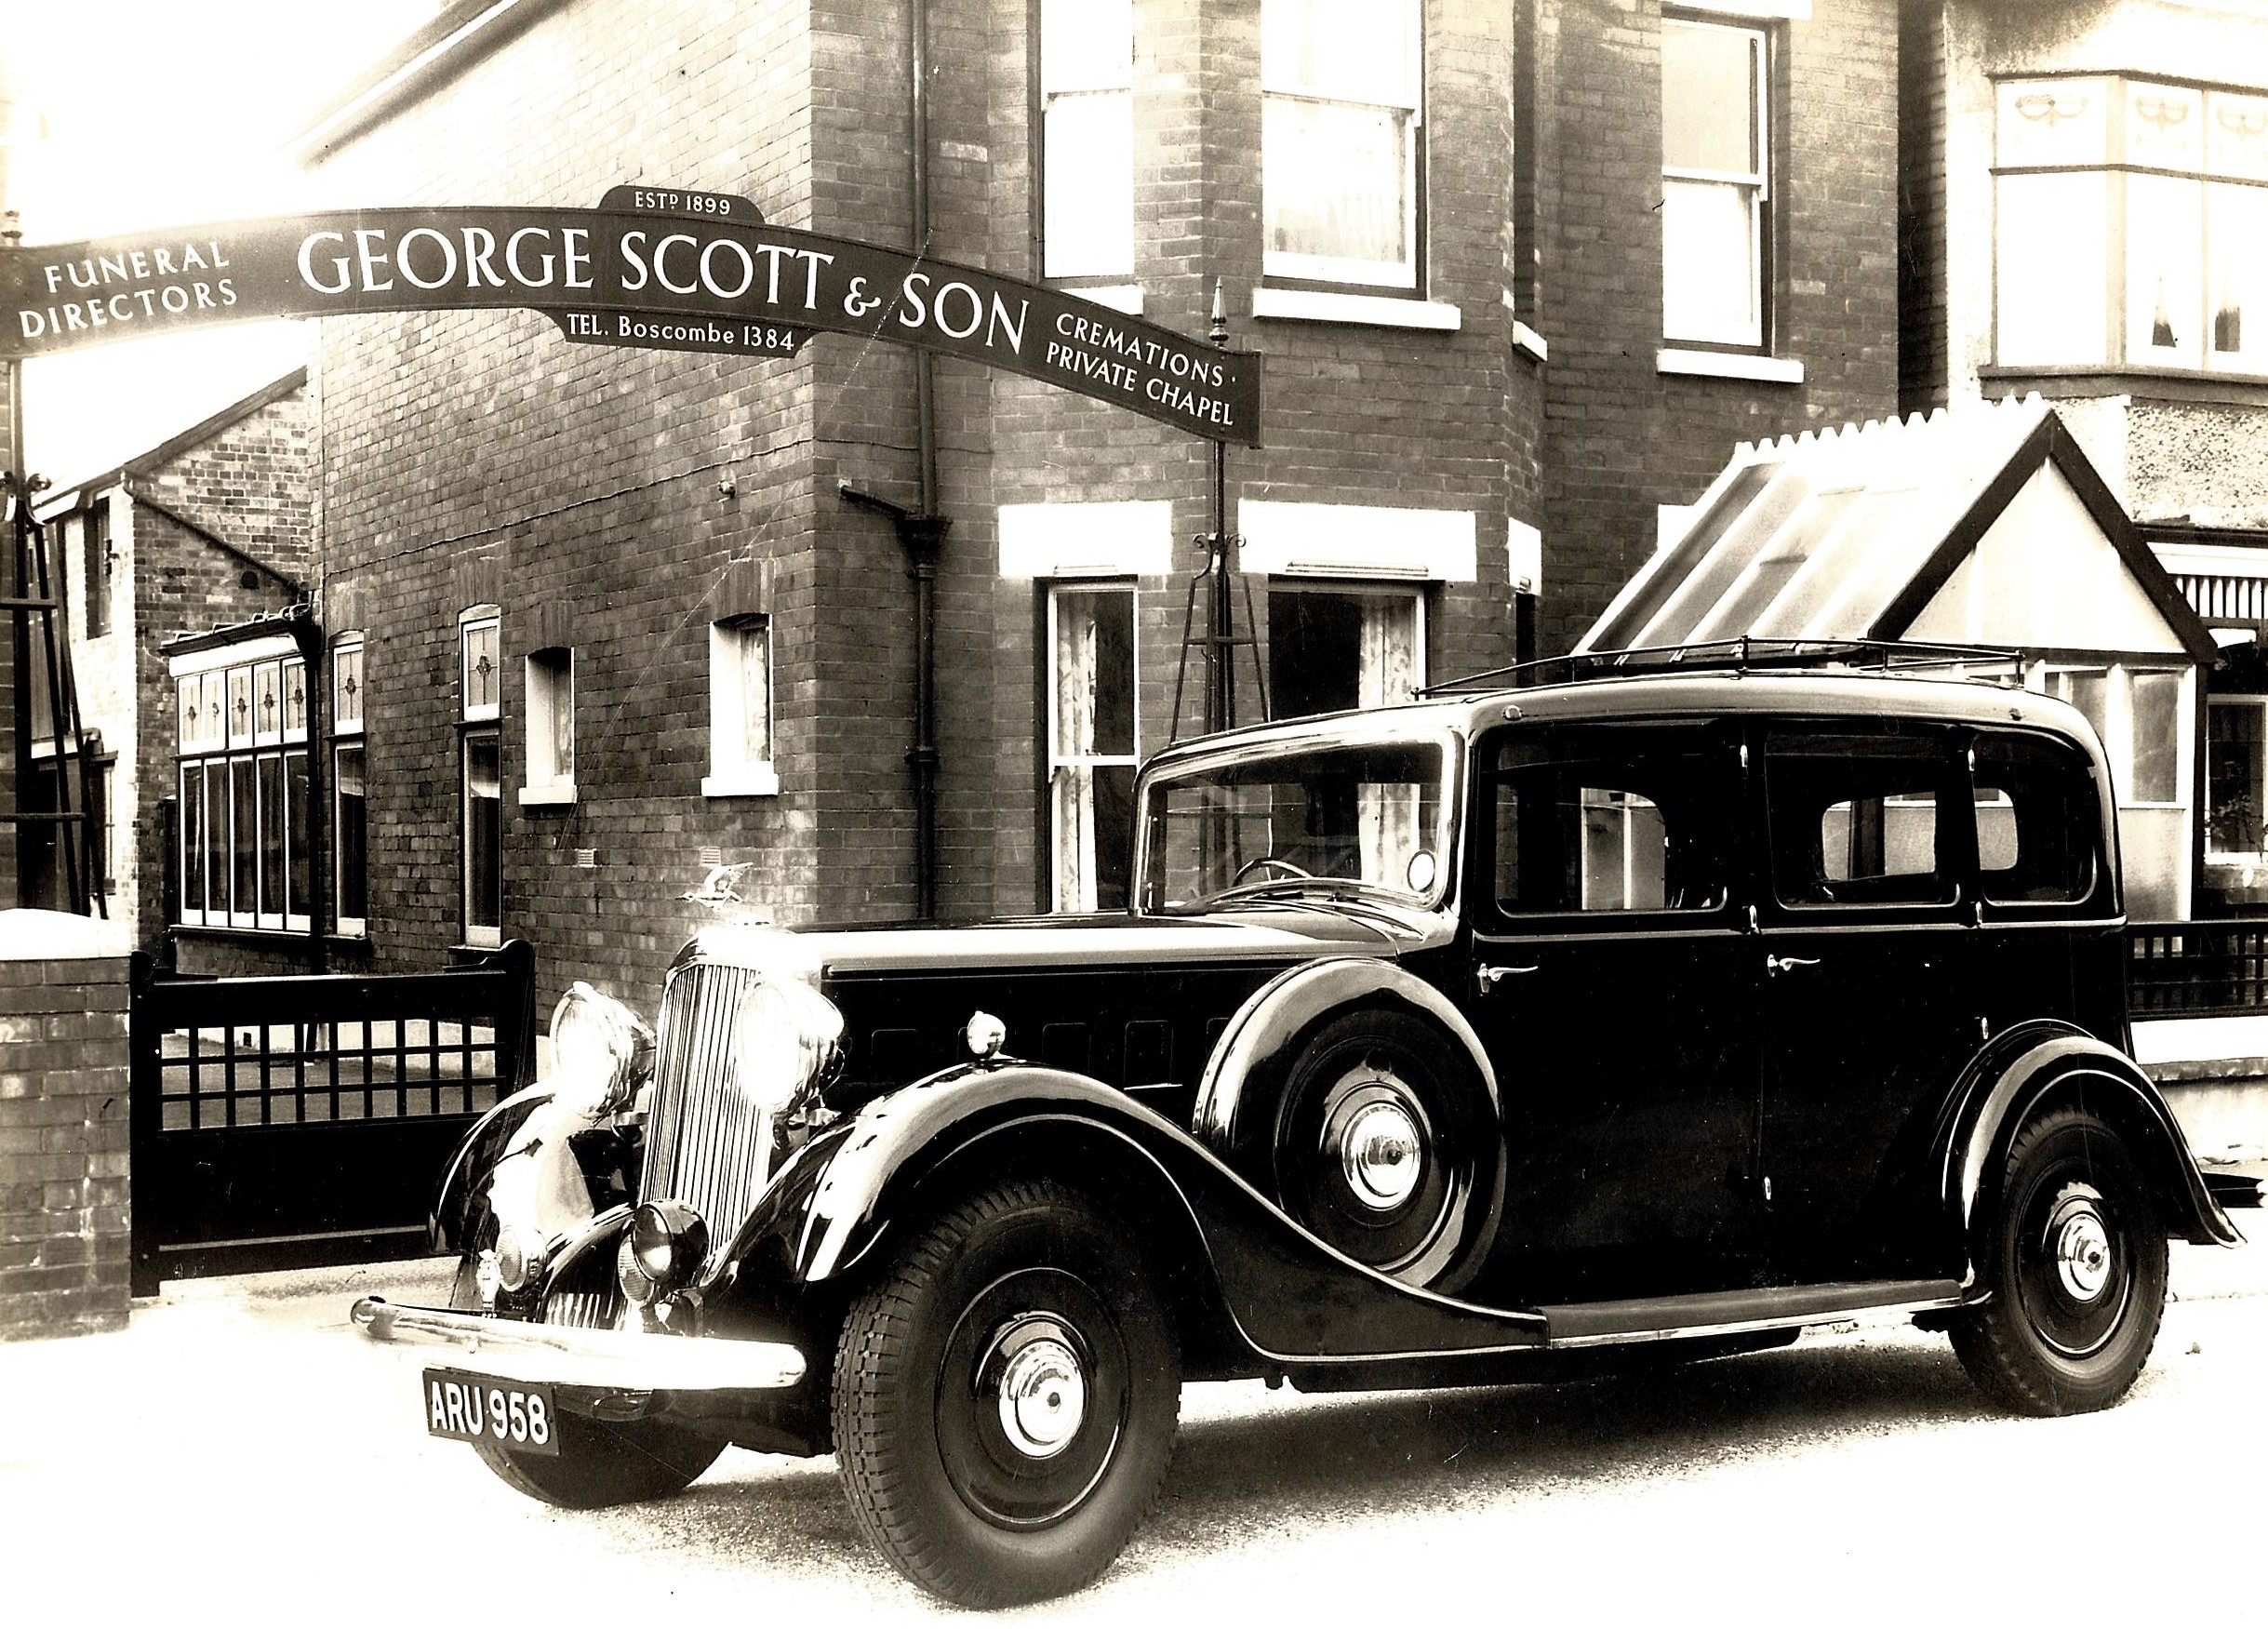 George Scott Funeral Directors historic car